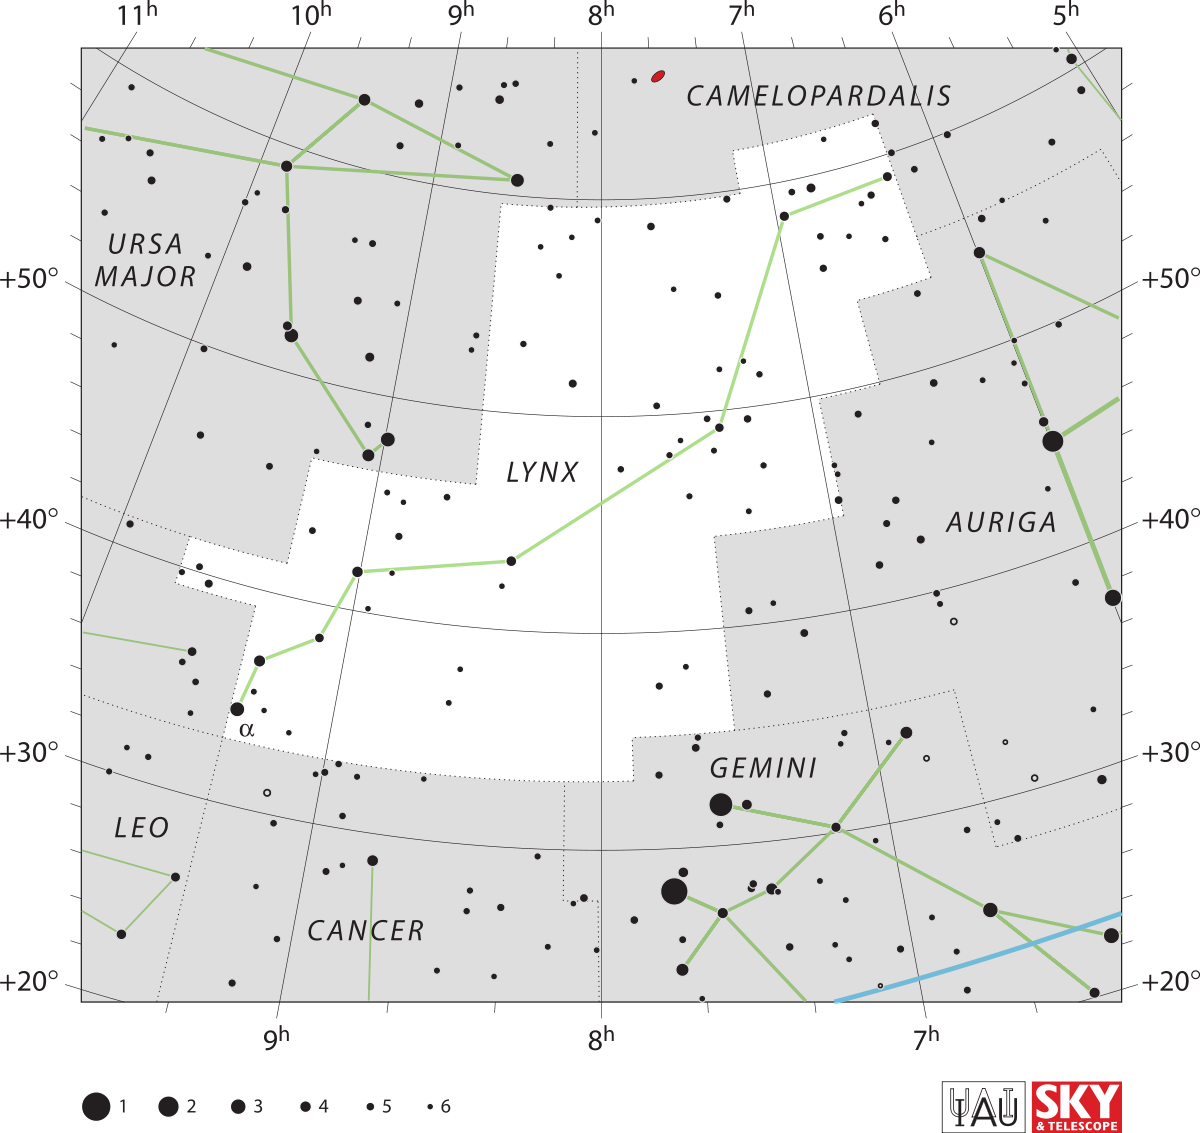 Constellations drawing telescopium. Lynx constellation wikipedia